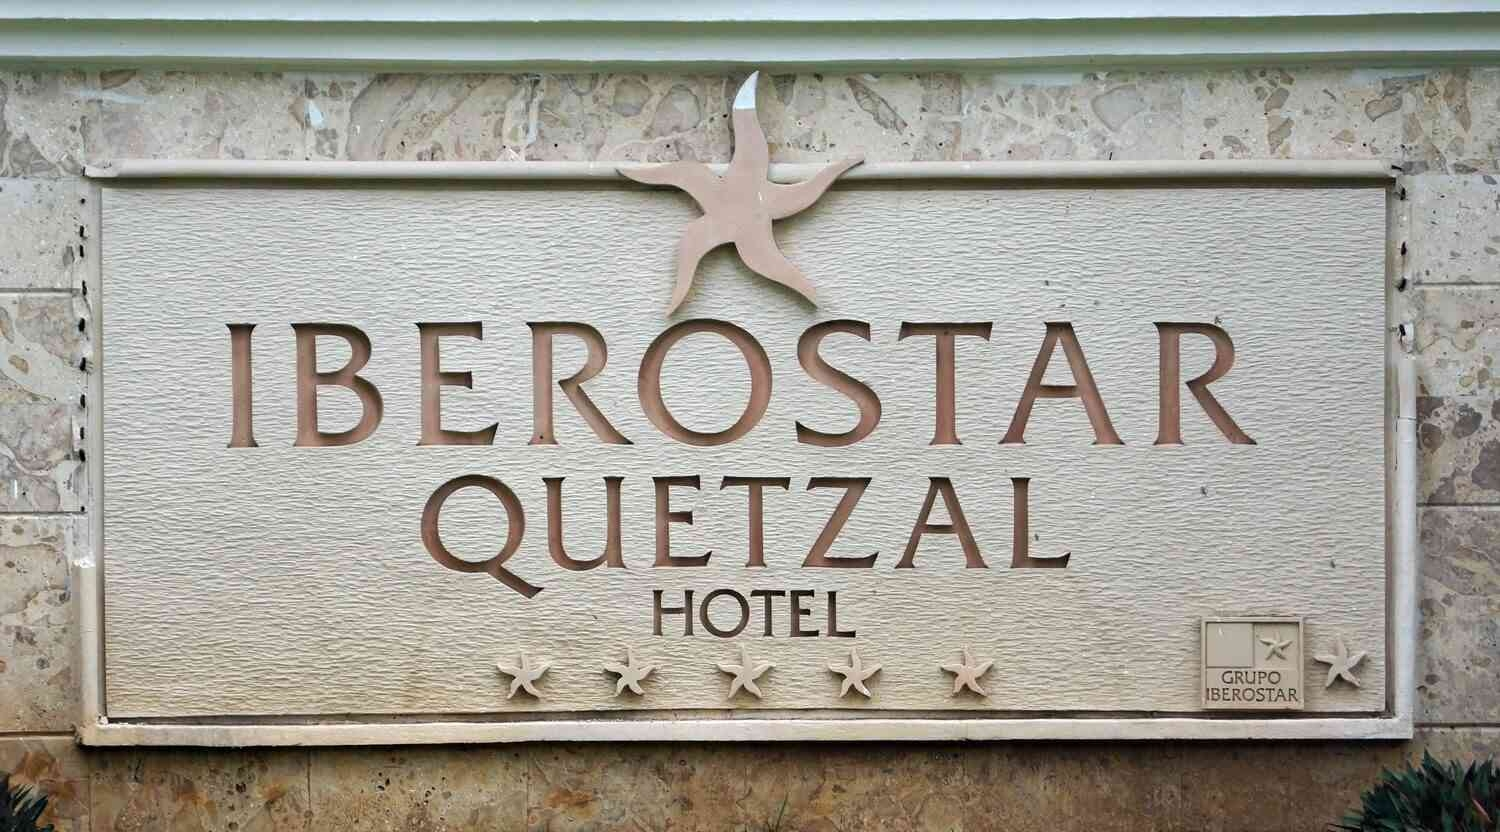 Iberostar Quetzal Hotel entrance sign in Playacar.